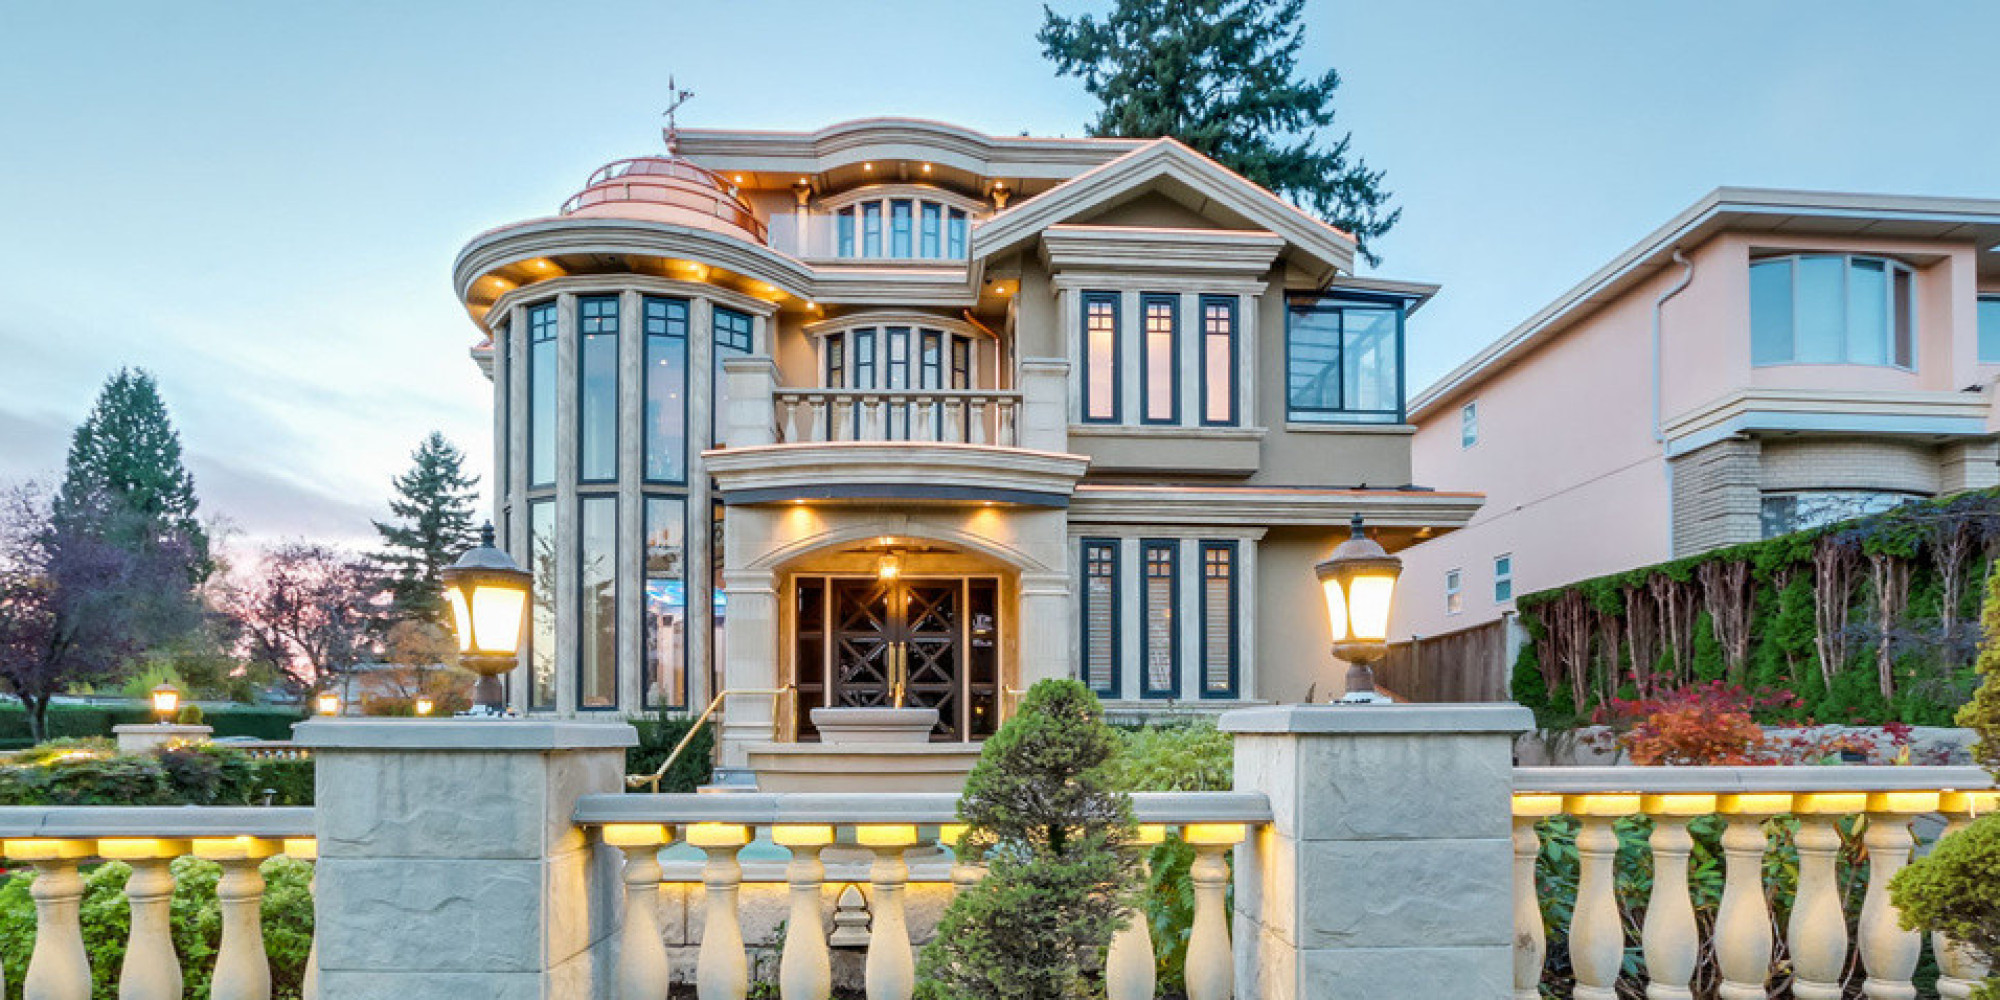 Vancouver Custom Built Mansion Is One Unique Home For Sale